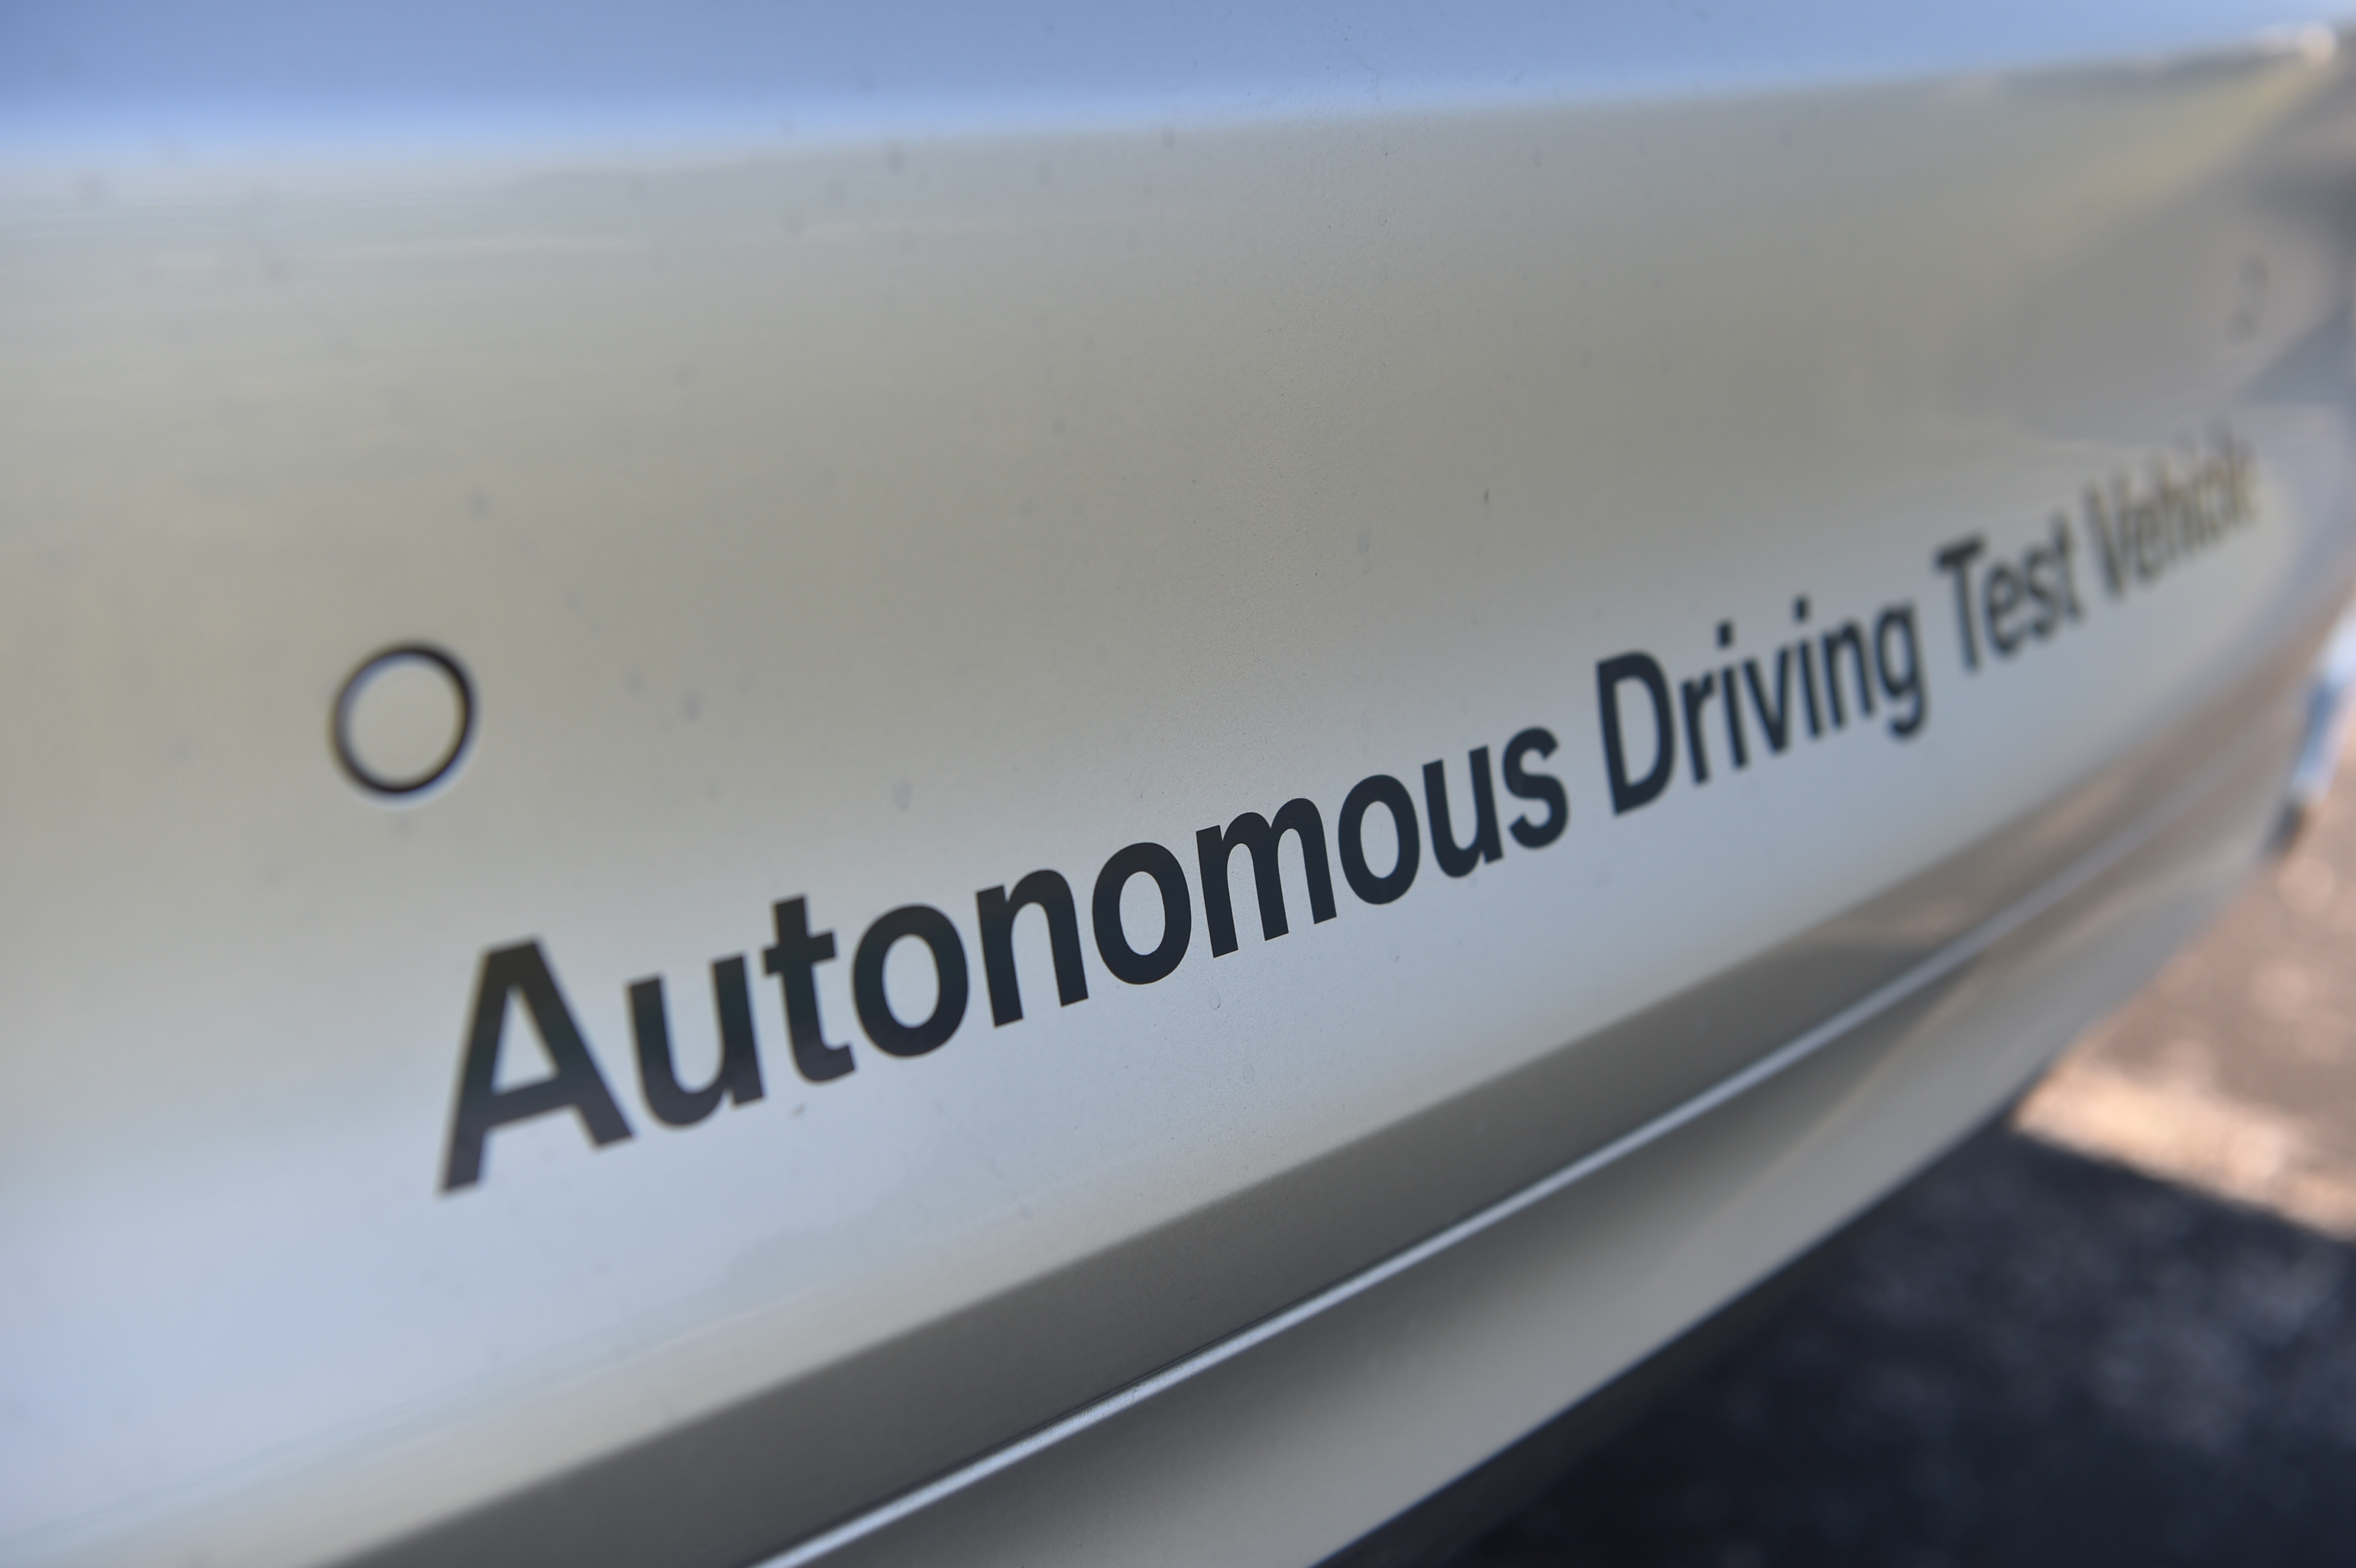 Shockingly, Congress acted responsibly in regulating autonomous cars… So what's next?